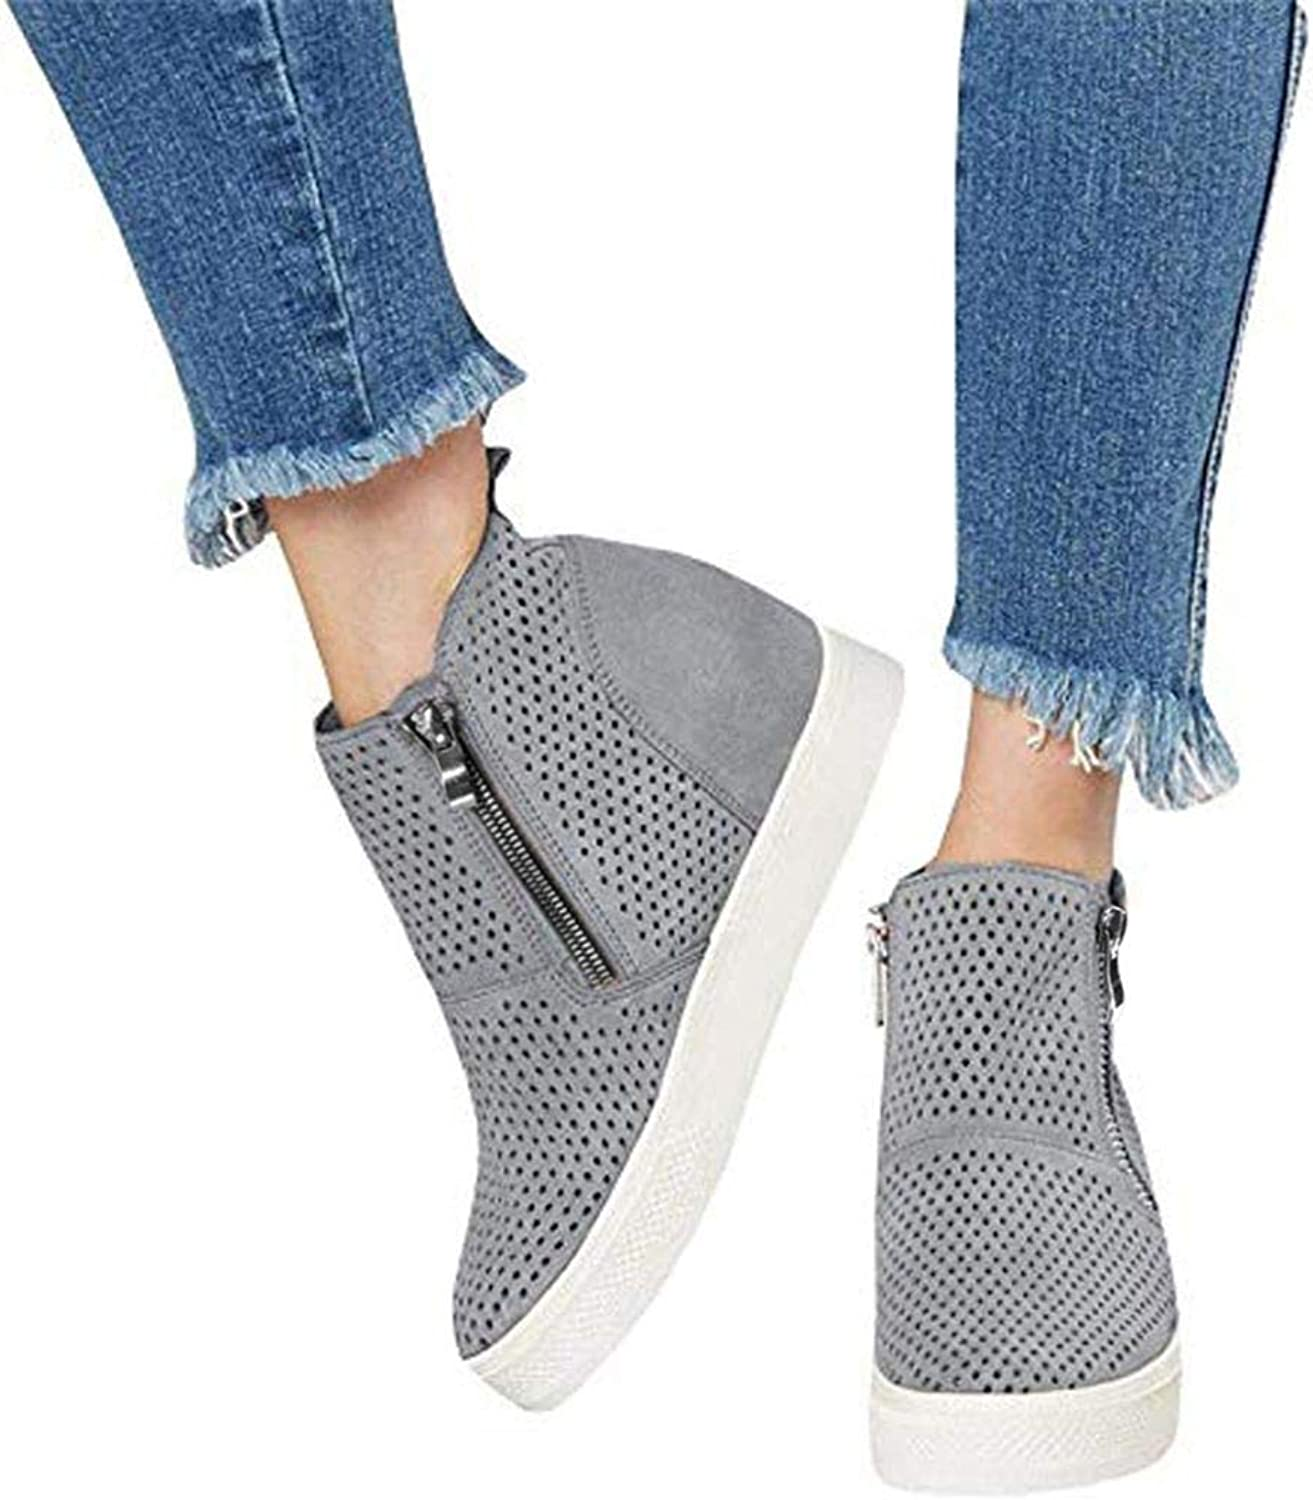 Paris Hill Women's Platform Heeled Bootie shoes Shape Ups Walking Wedges Sandals